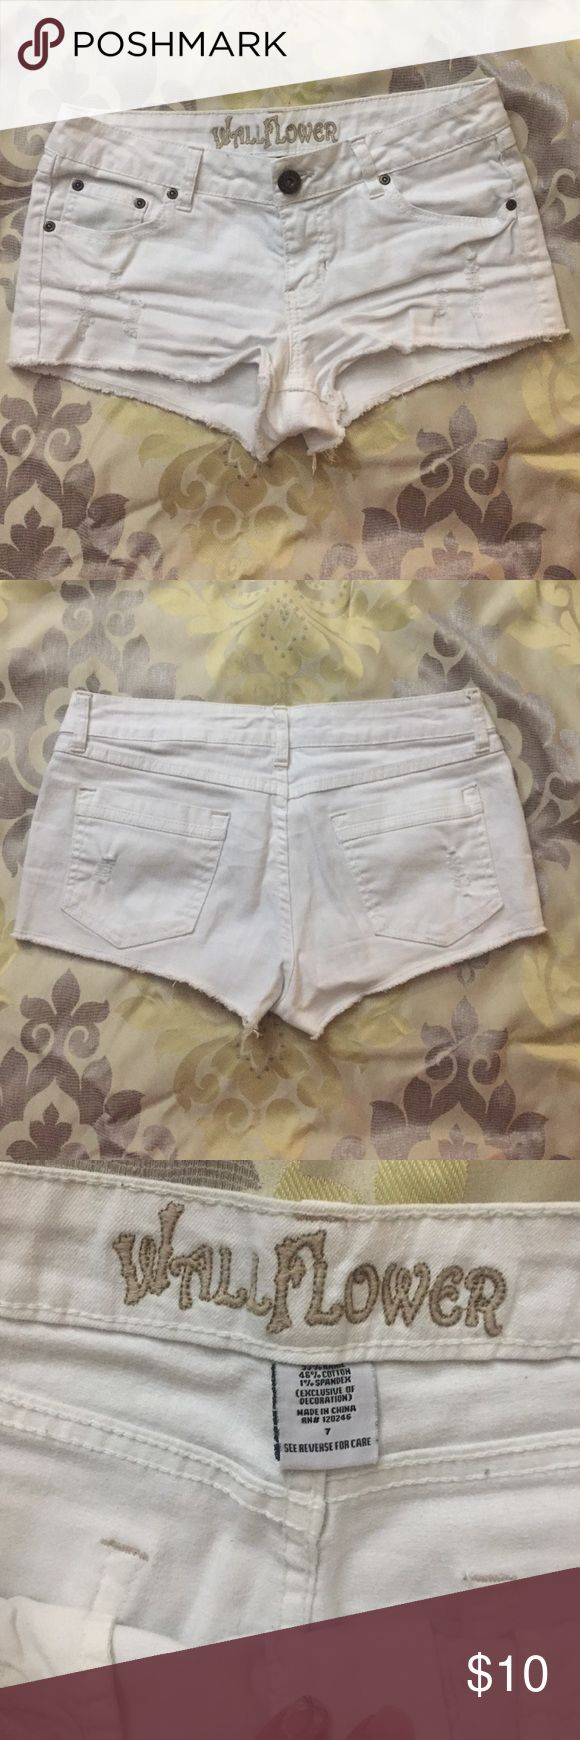 White shorts White low rise shorts, no holes or stains, size 7 juniors Shorts Jean Shorts